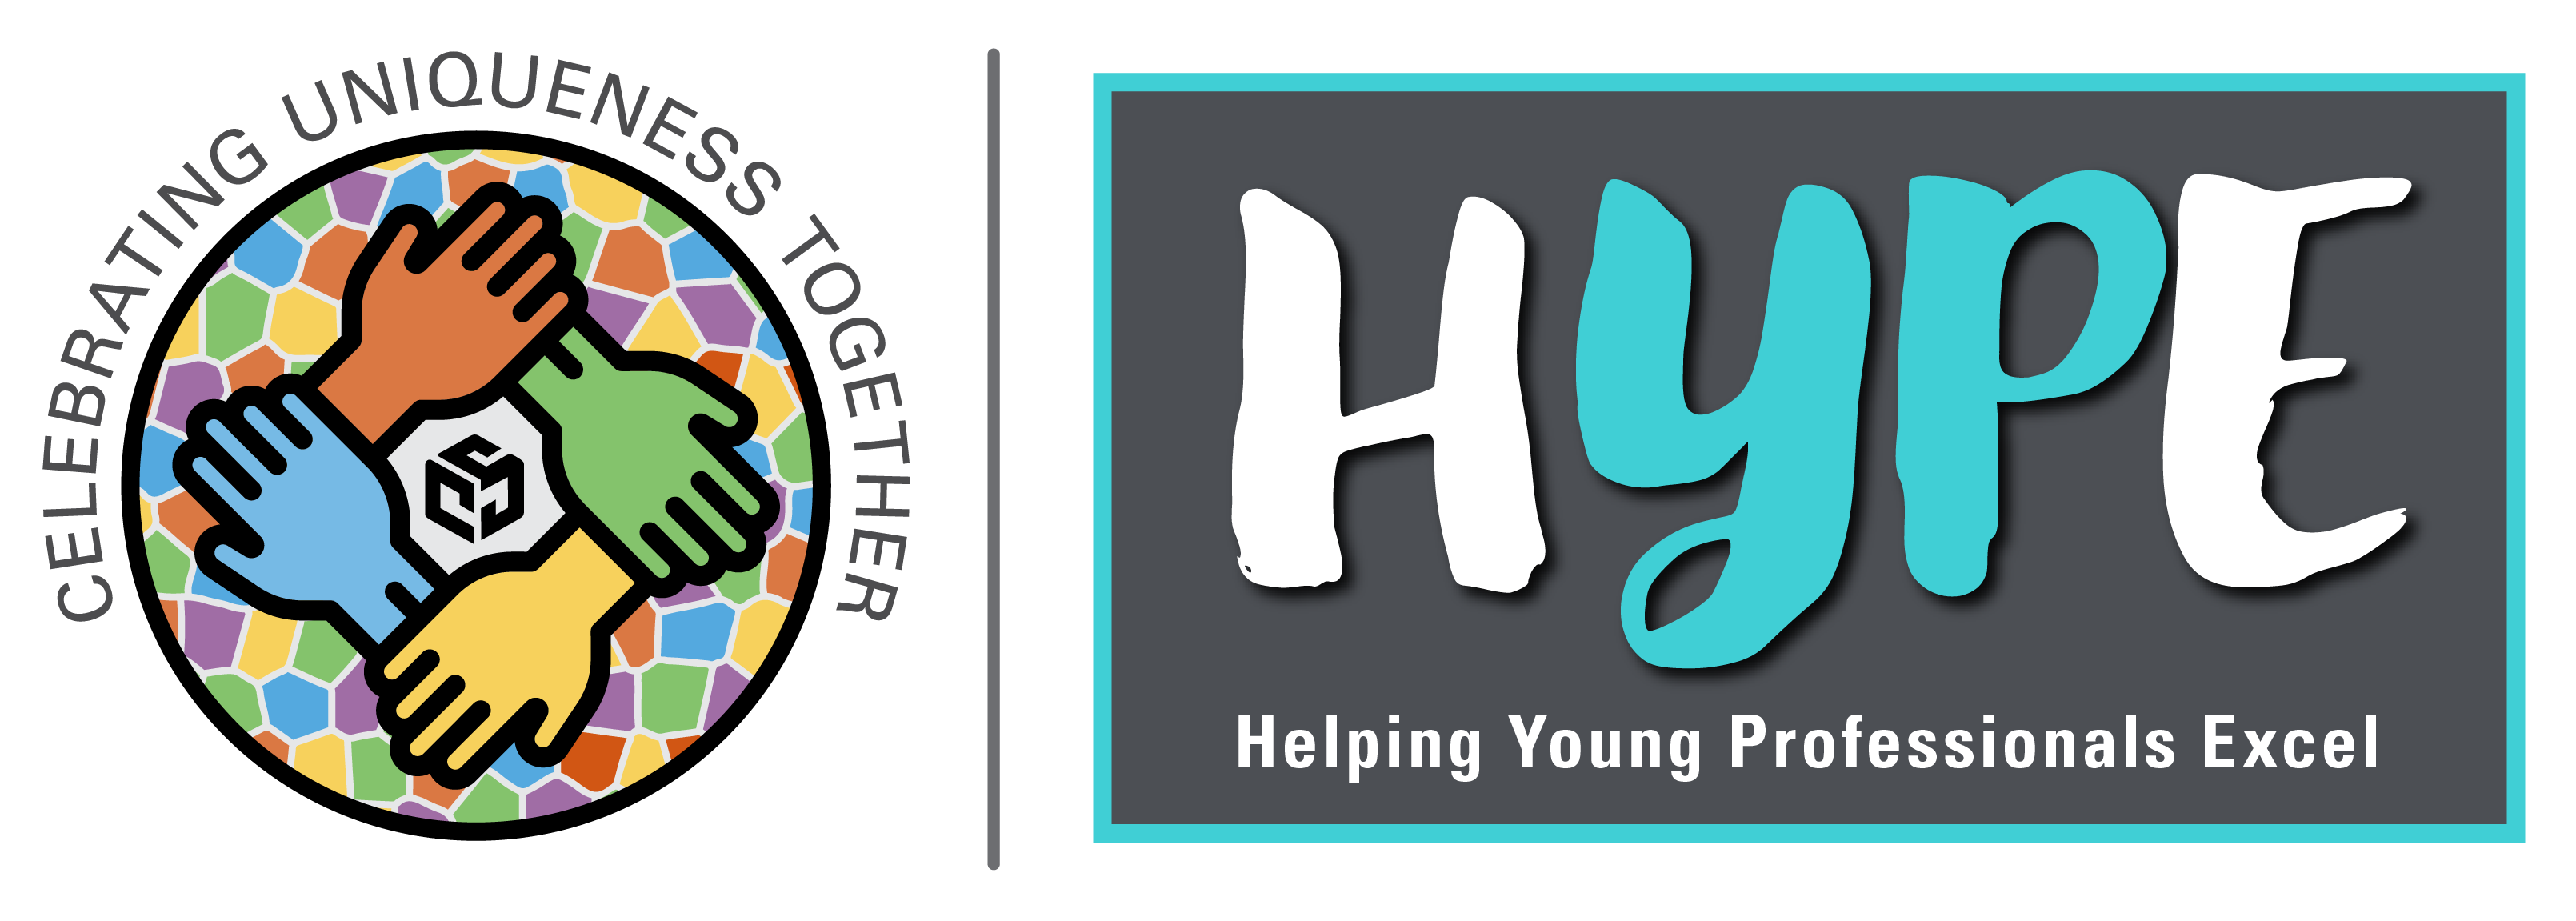 HYPE ERG Logo FINAL with Celebrating Uniqueness_Diversity and Inclusion